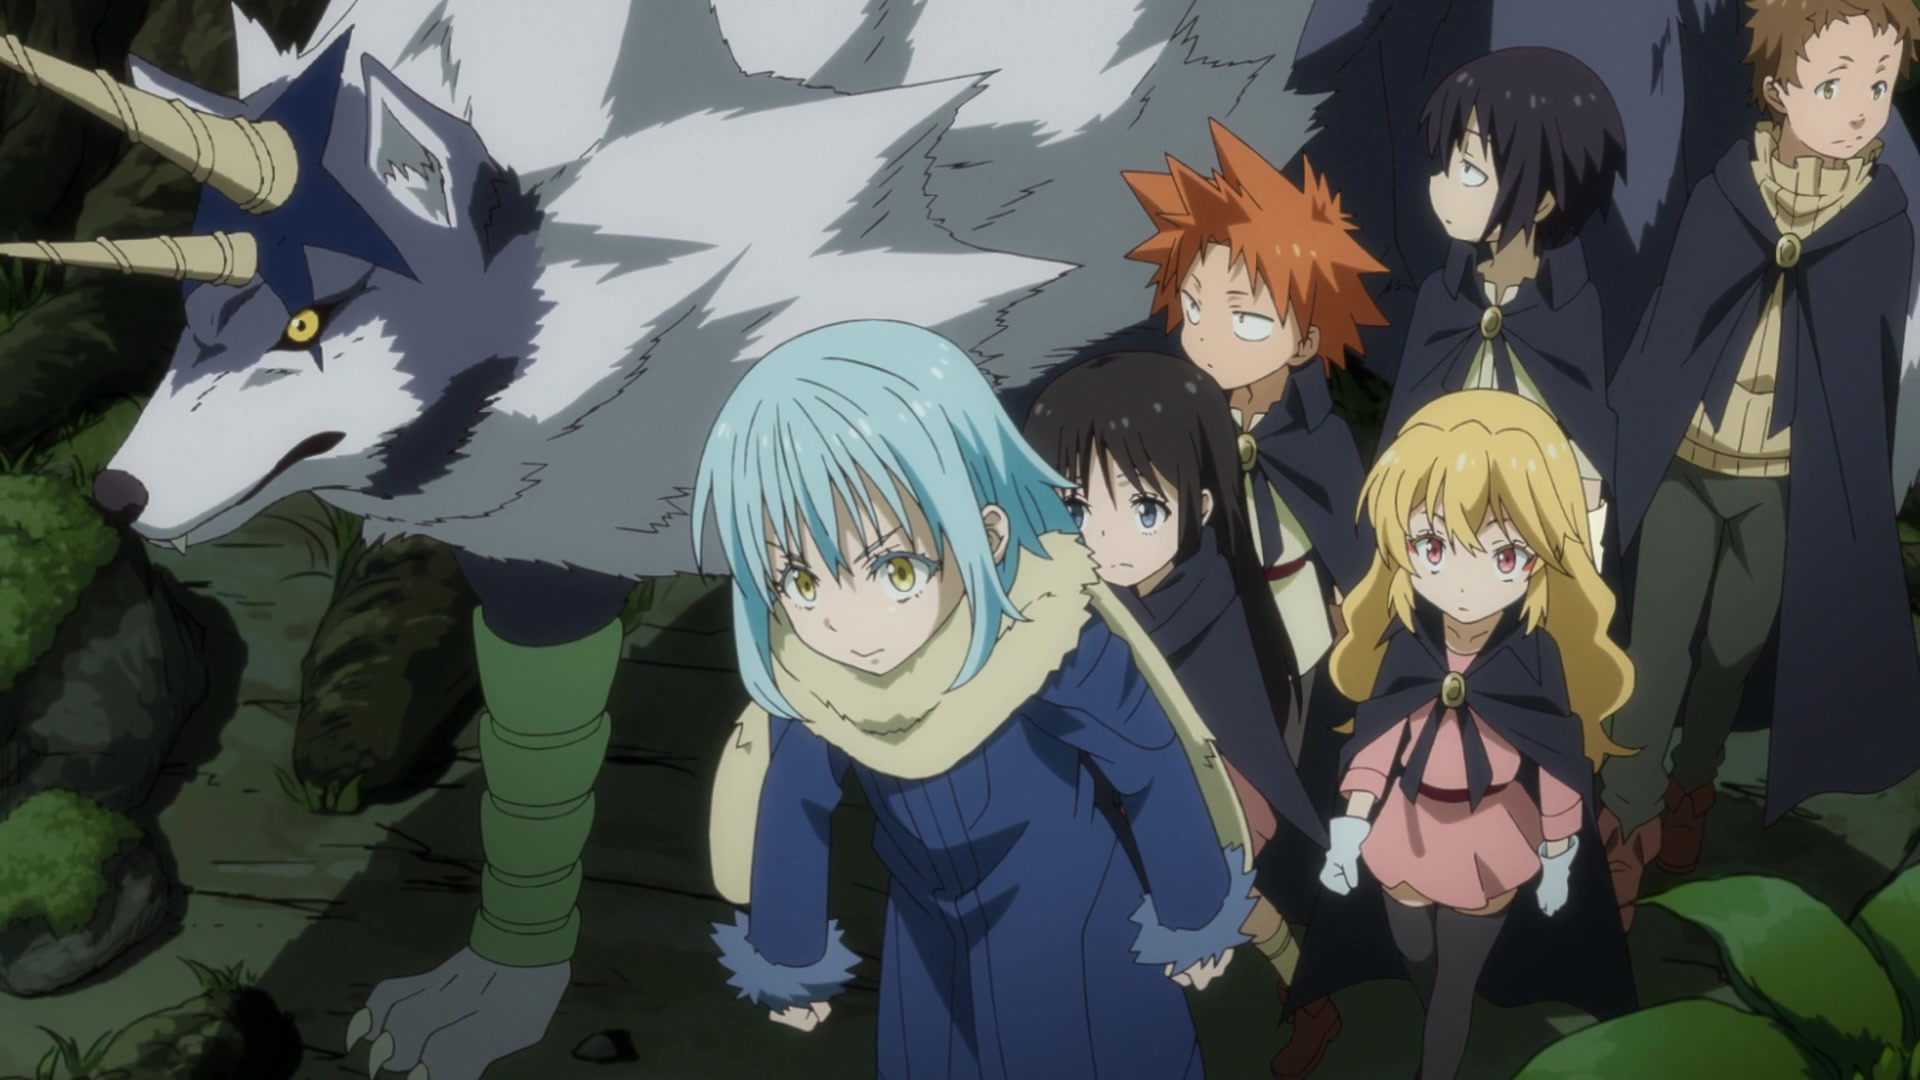 That Time I Got Reincarnated as a Slime Season 2 Episode 13 Release Date and Time 3